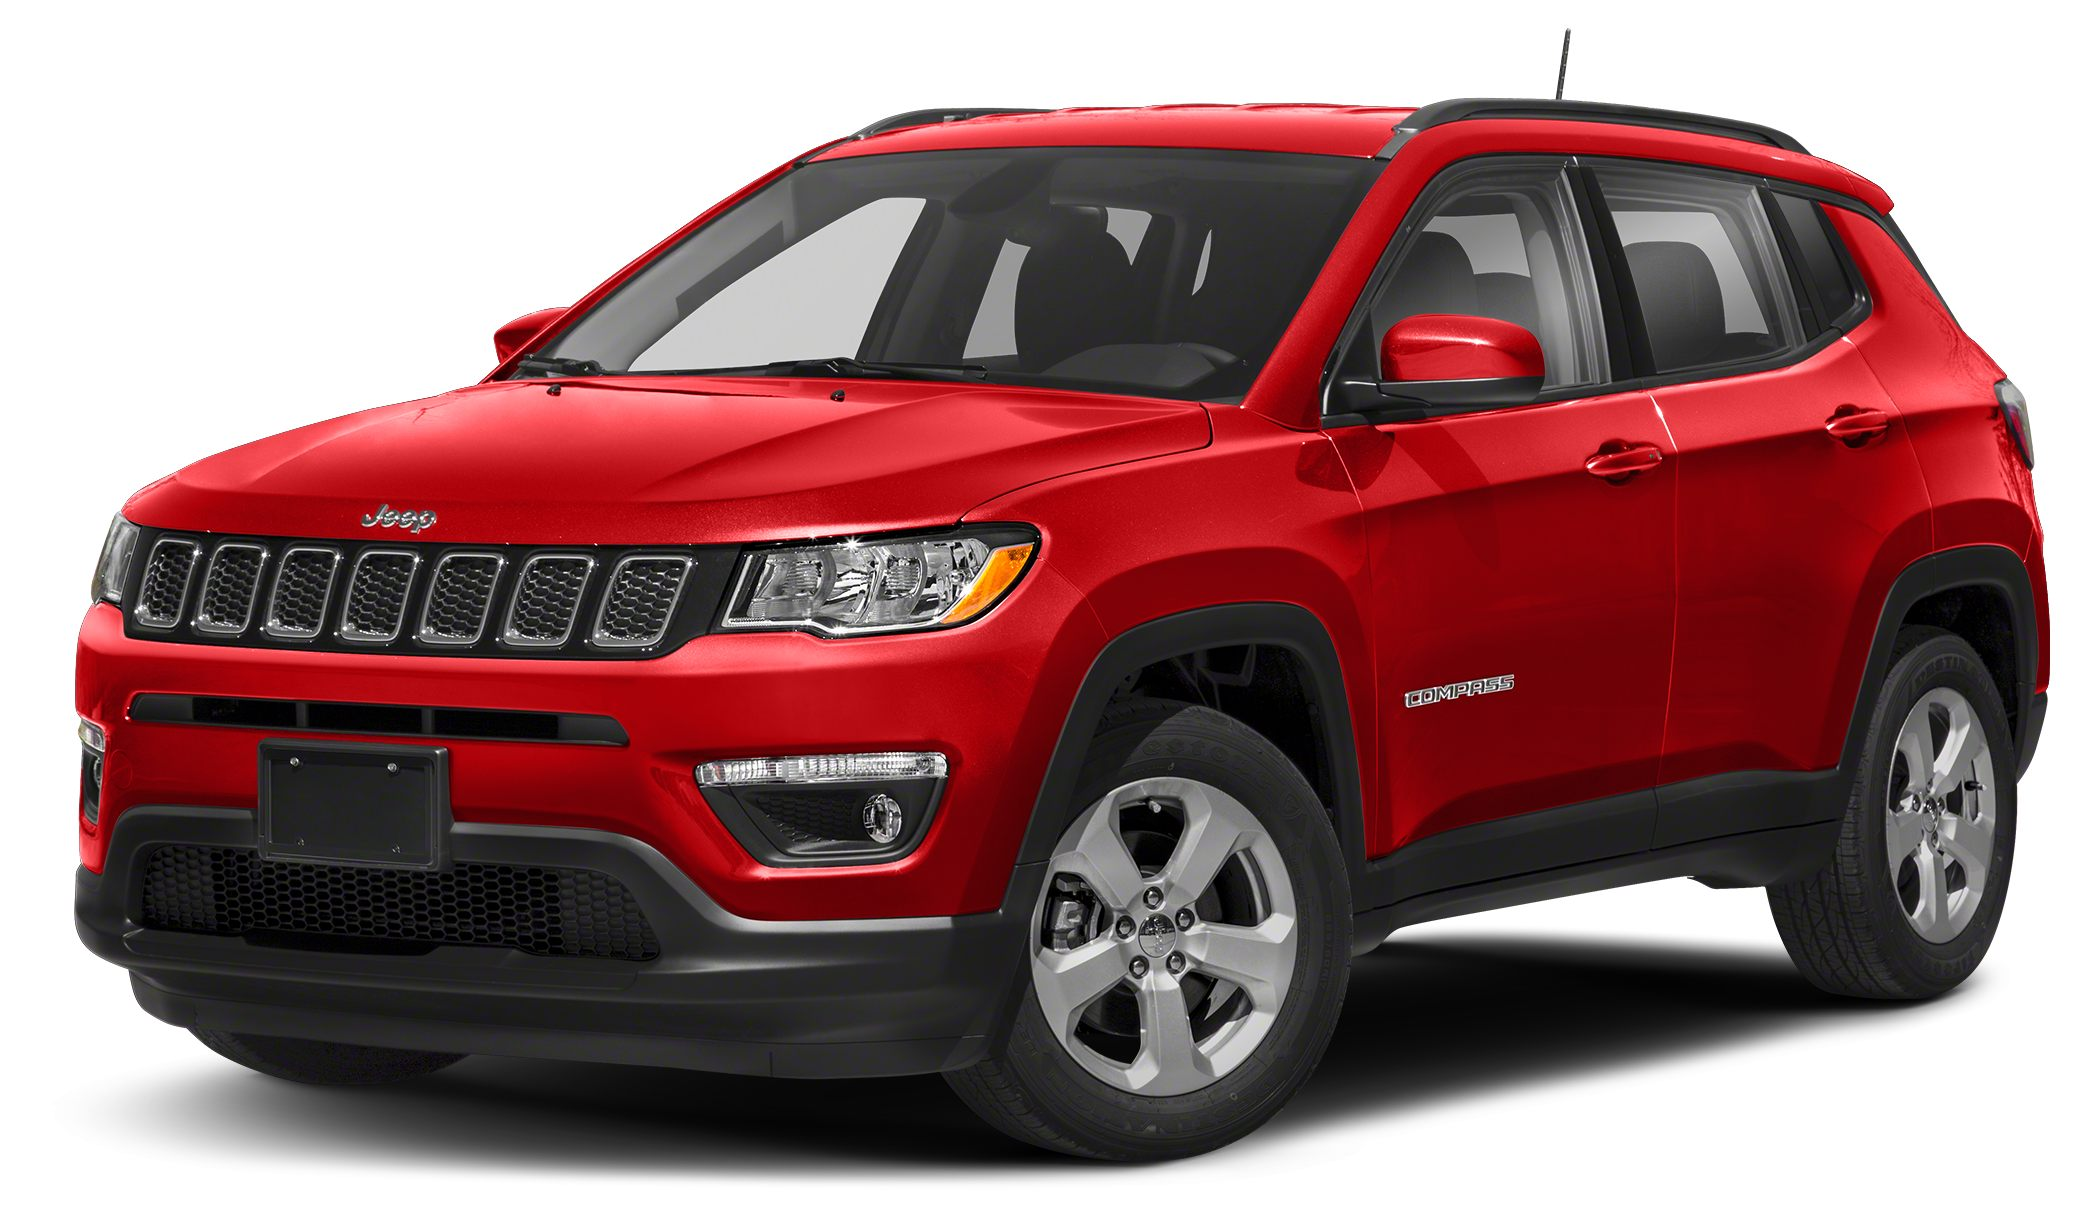 2018 Jeep Compass Sport New Price Recent Arrival Orange 2018 Jeep Compass Sport FWD 6-Speed Aisi